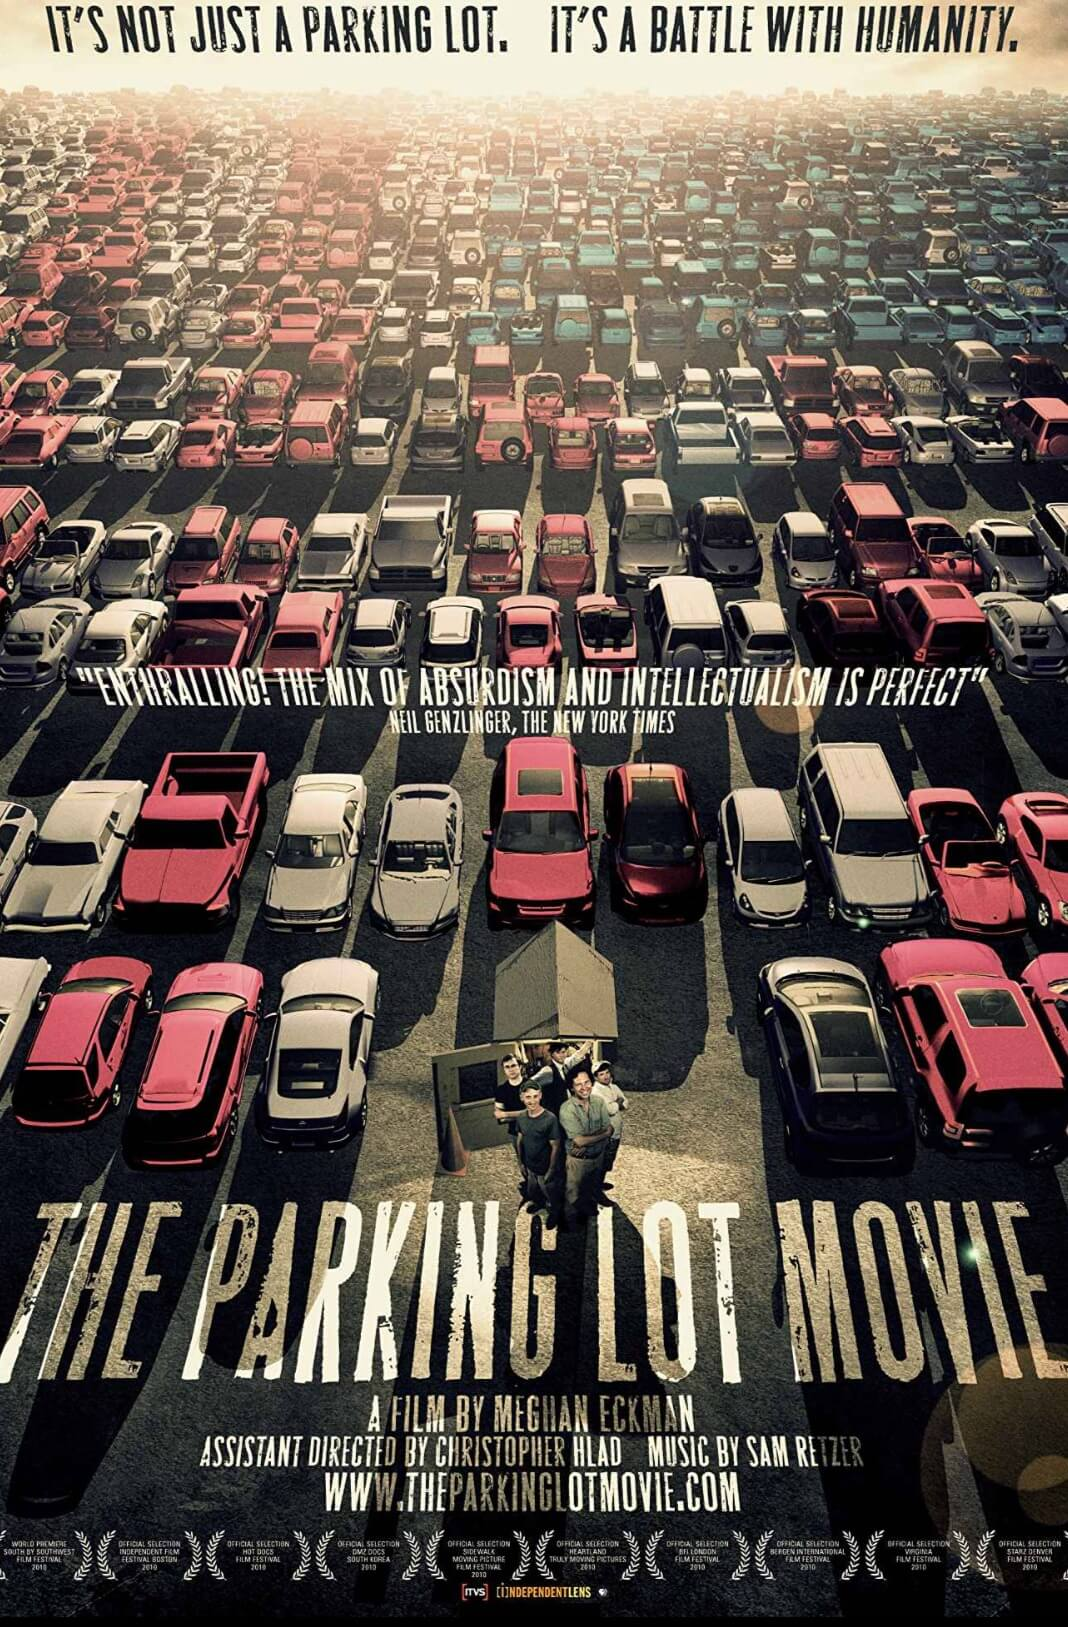 Documentary Films The Parking Lot Movie